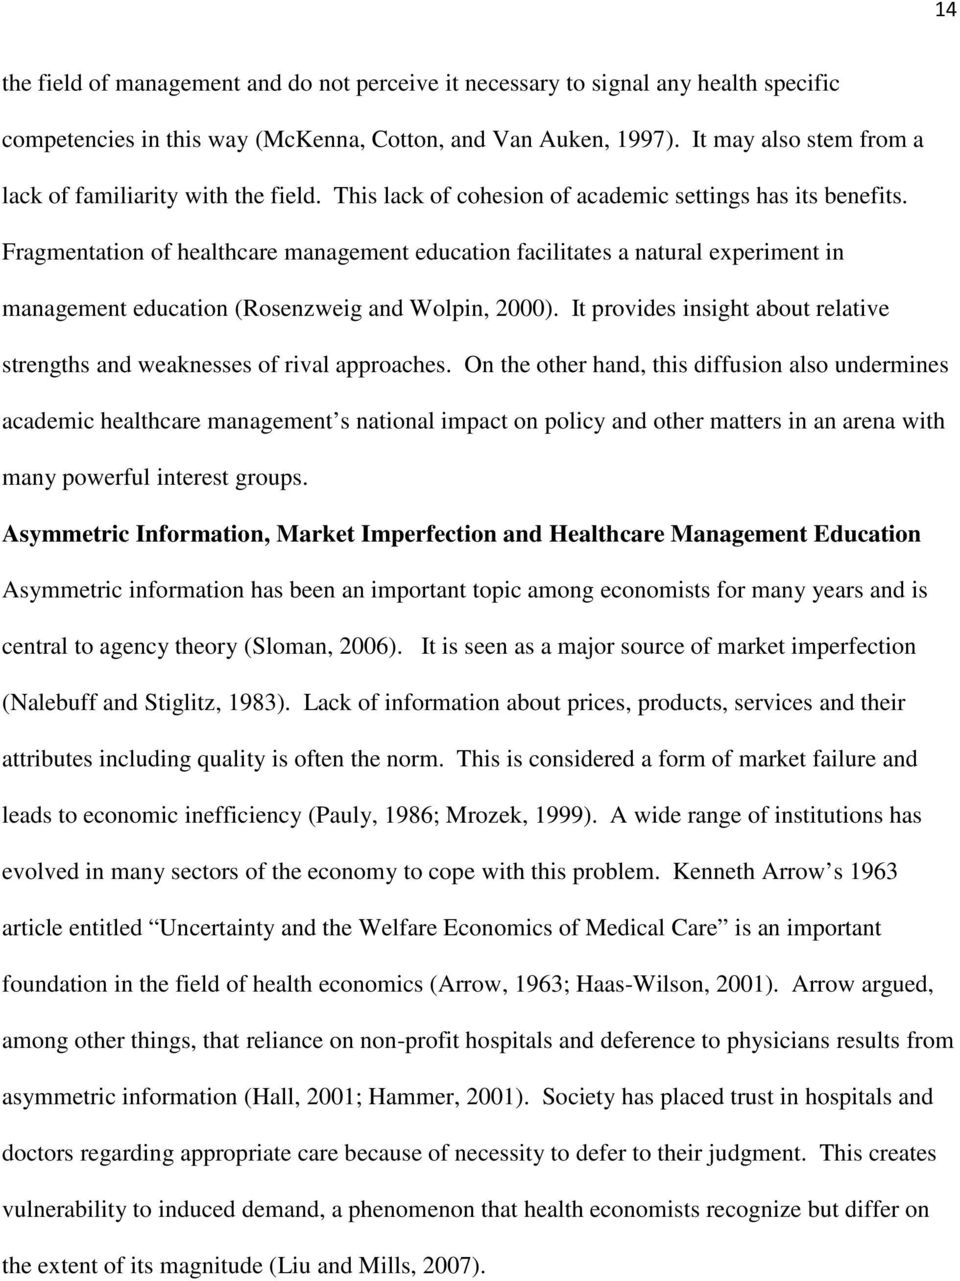 Fragmentation of healthcare management education facilitates a natural experiment in management education (Rosenzweig and Wolpin, 2000).